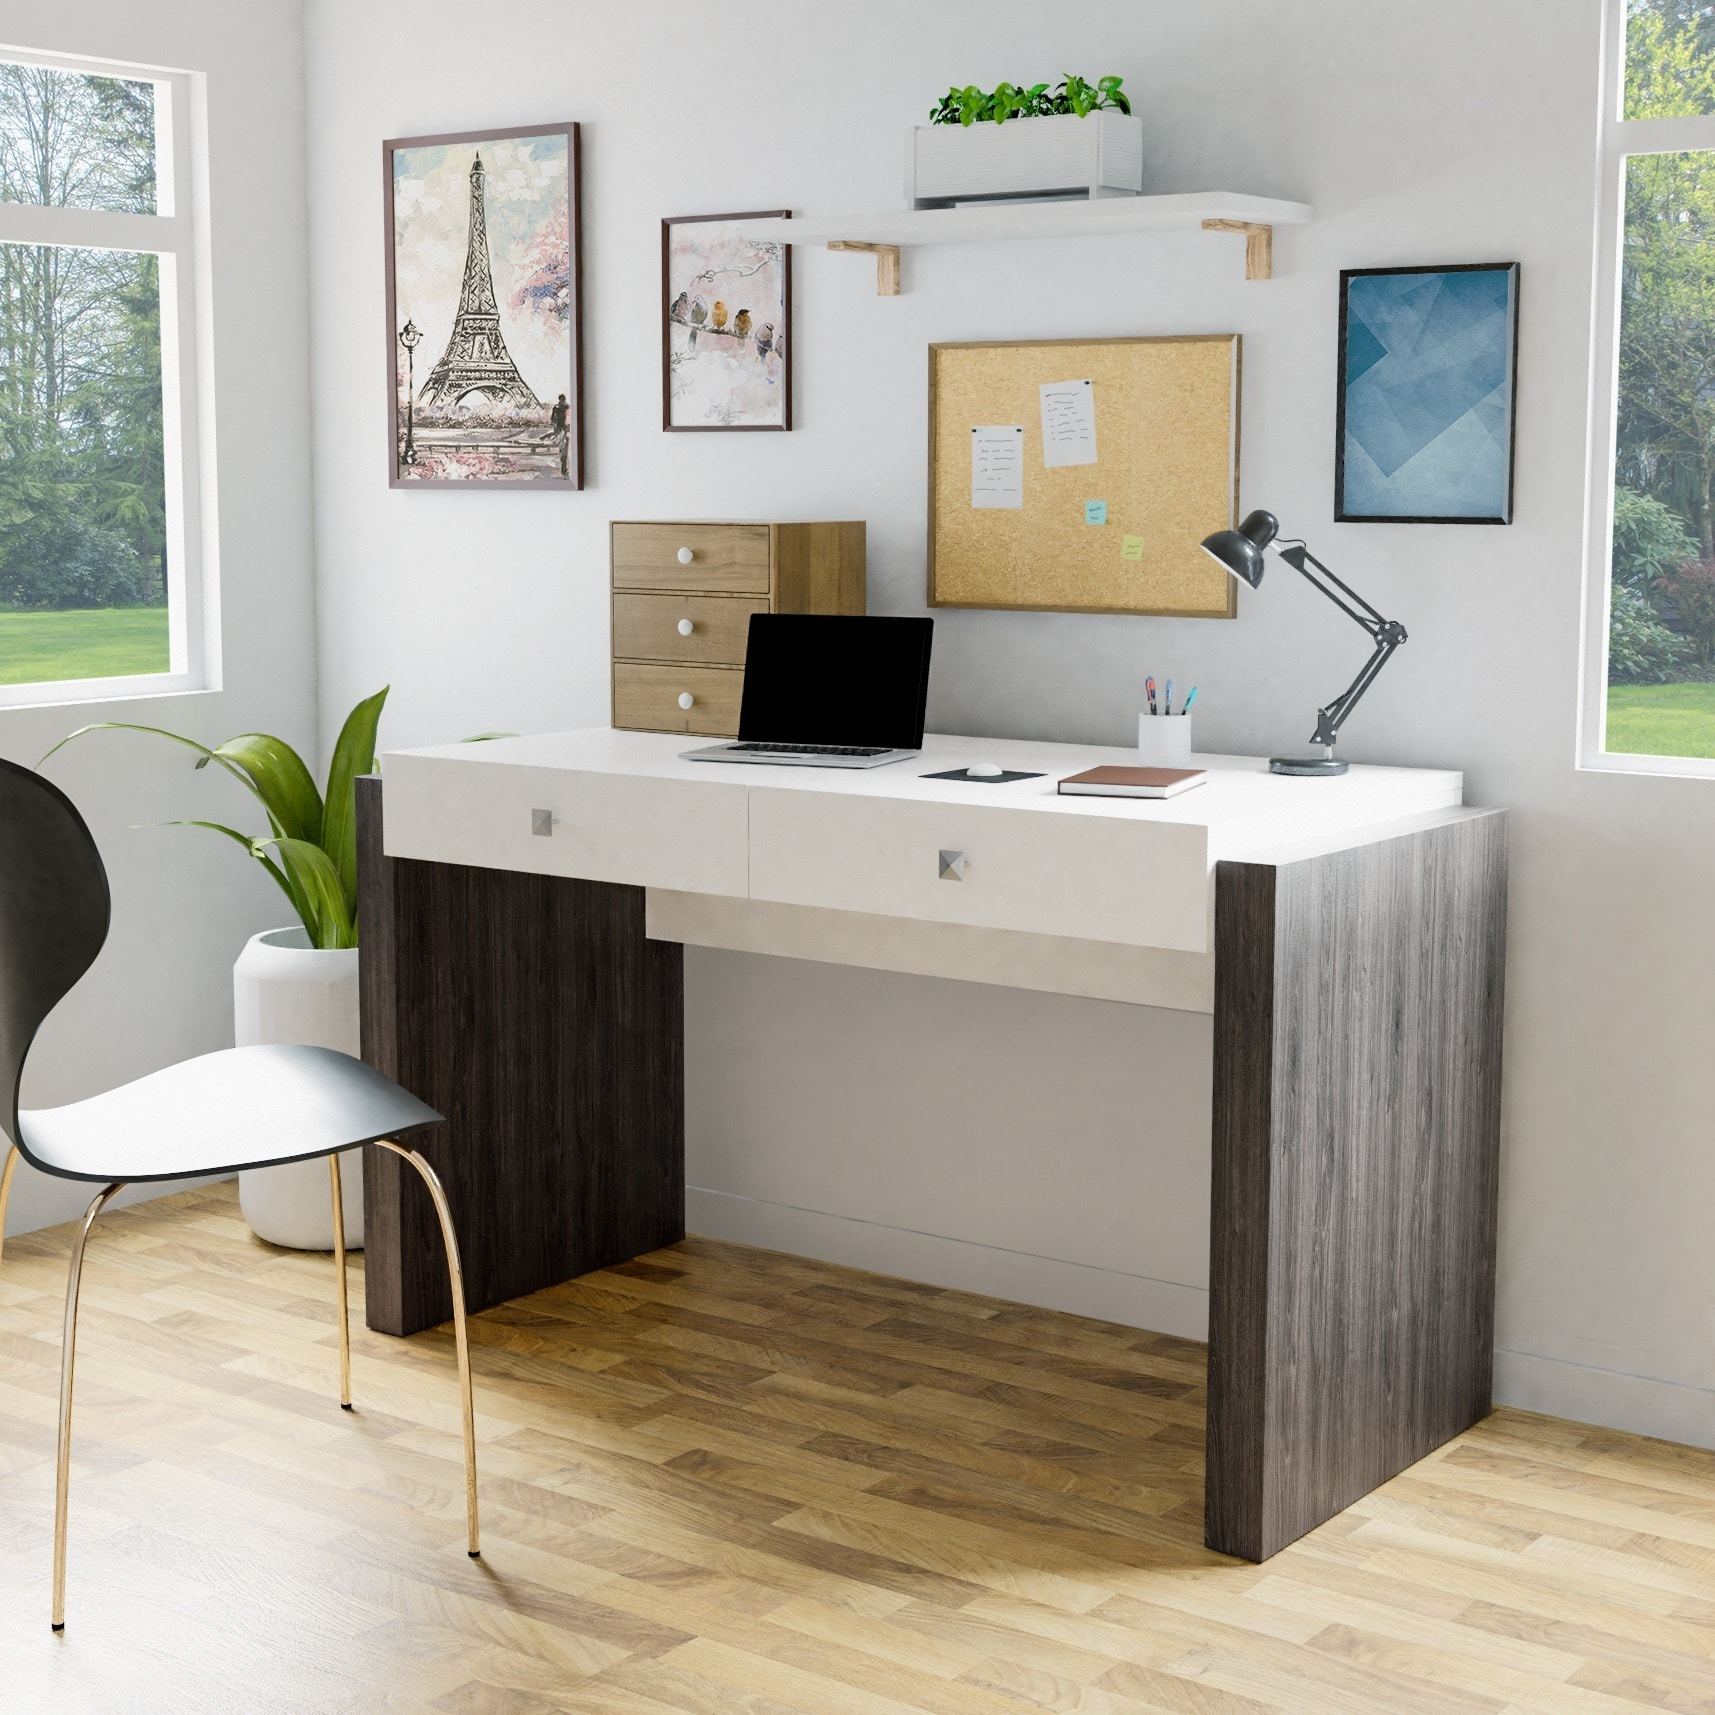 Details about furniture of america zilo modern contemporary glossy white 2 drawer home office